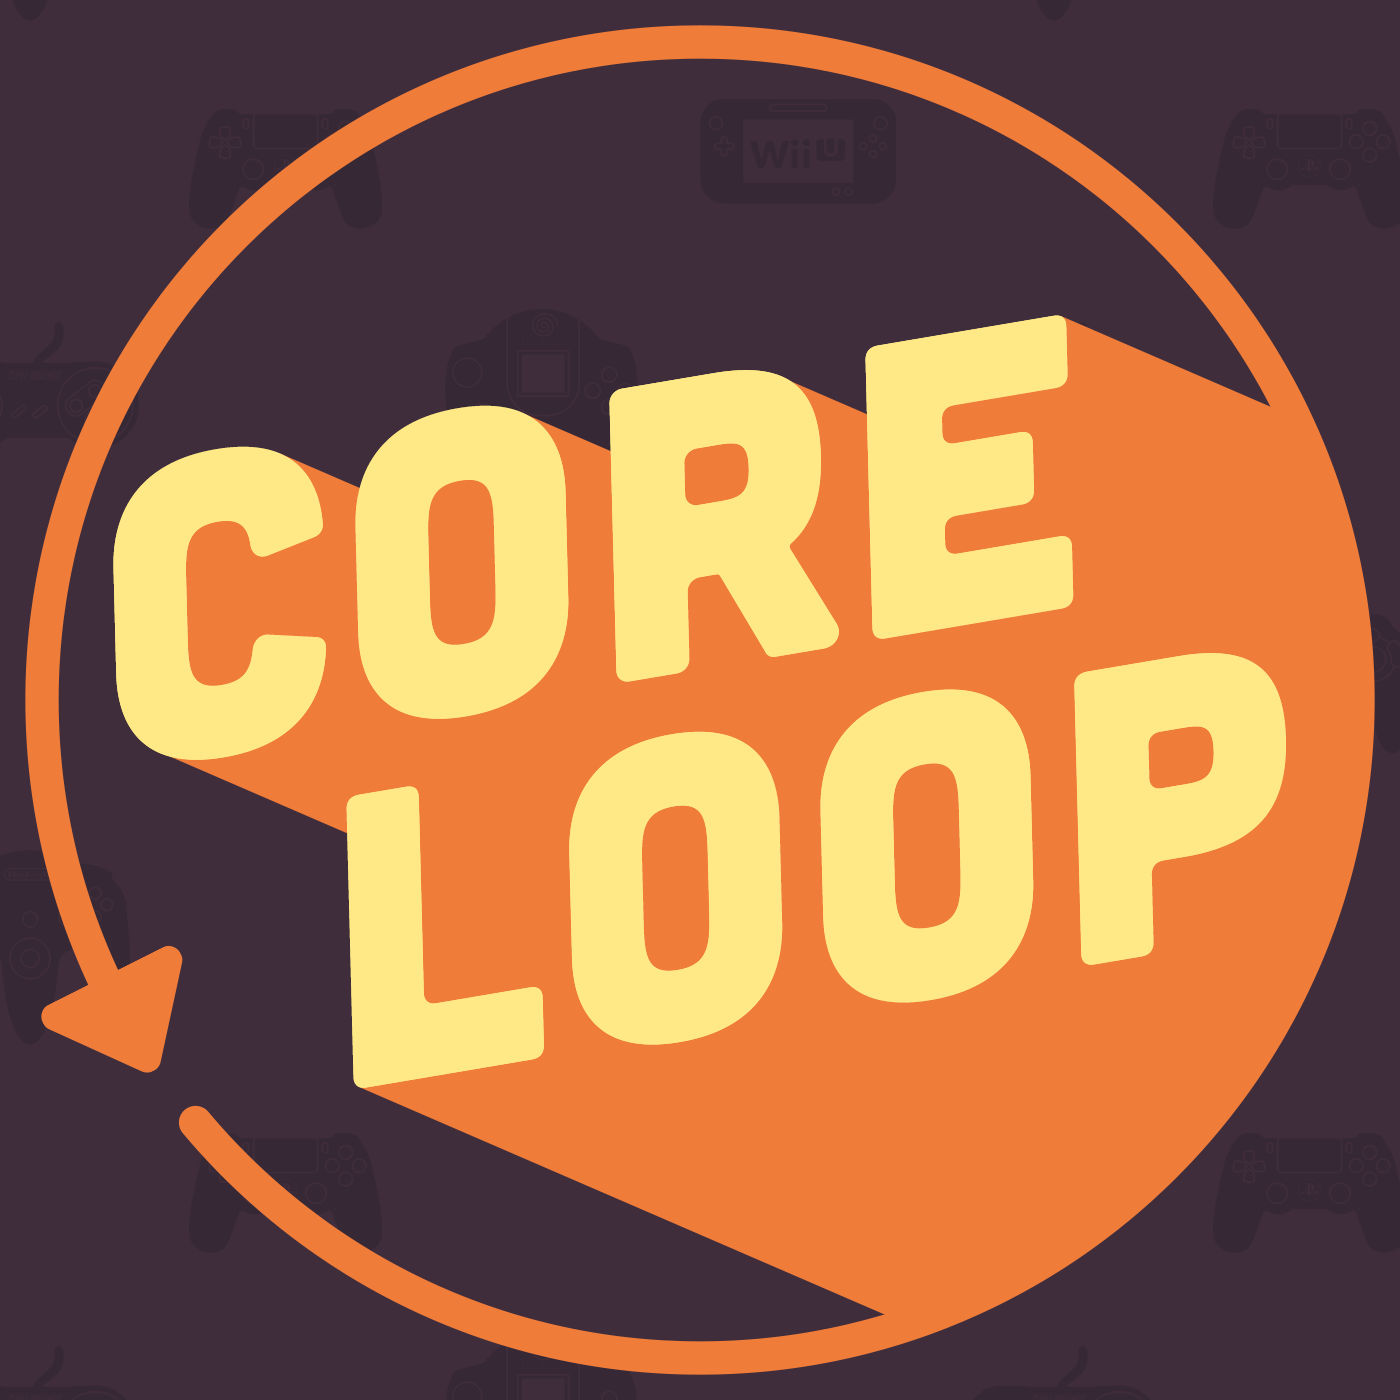 Core Loop - Video Game Talk